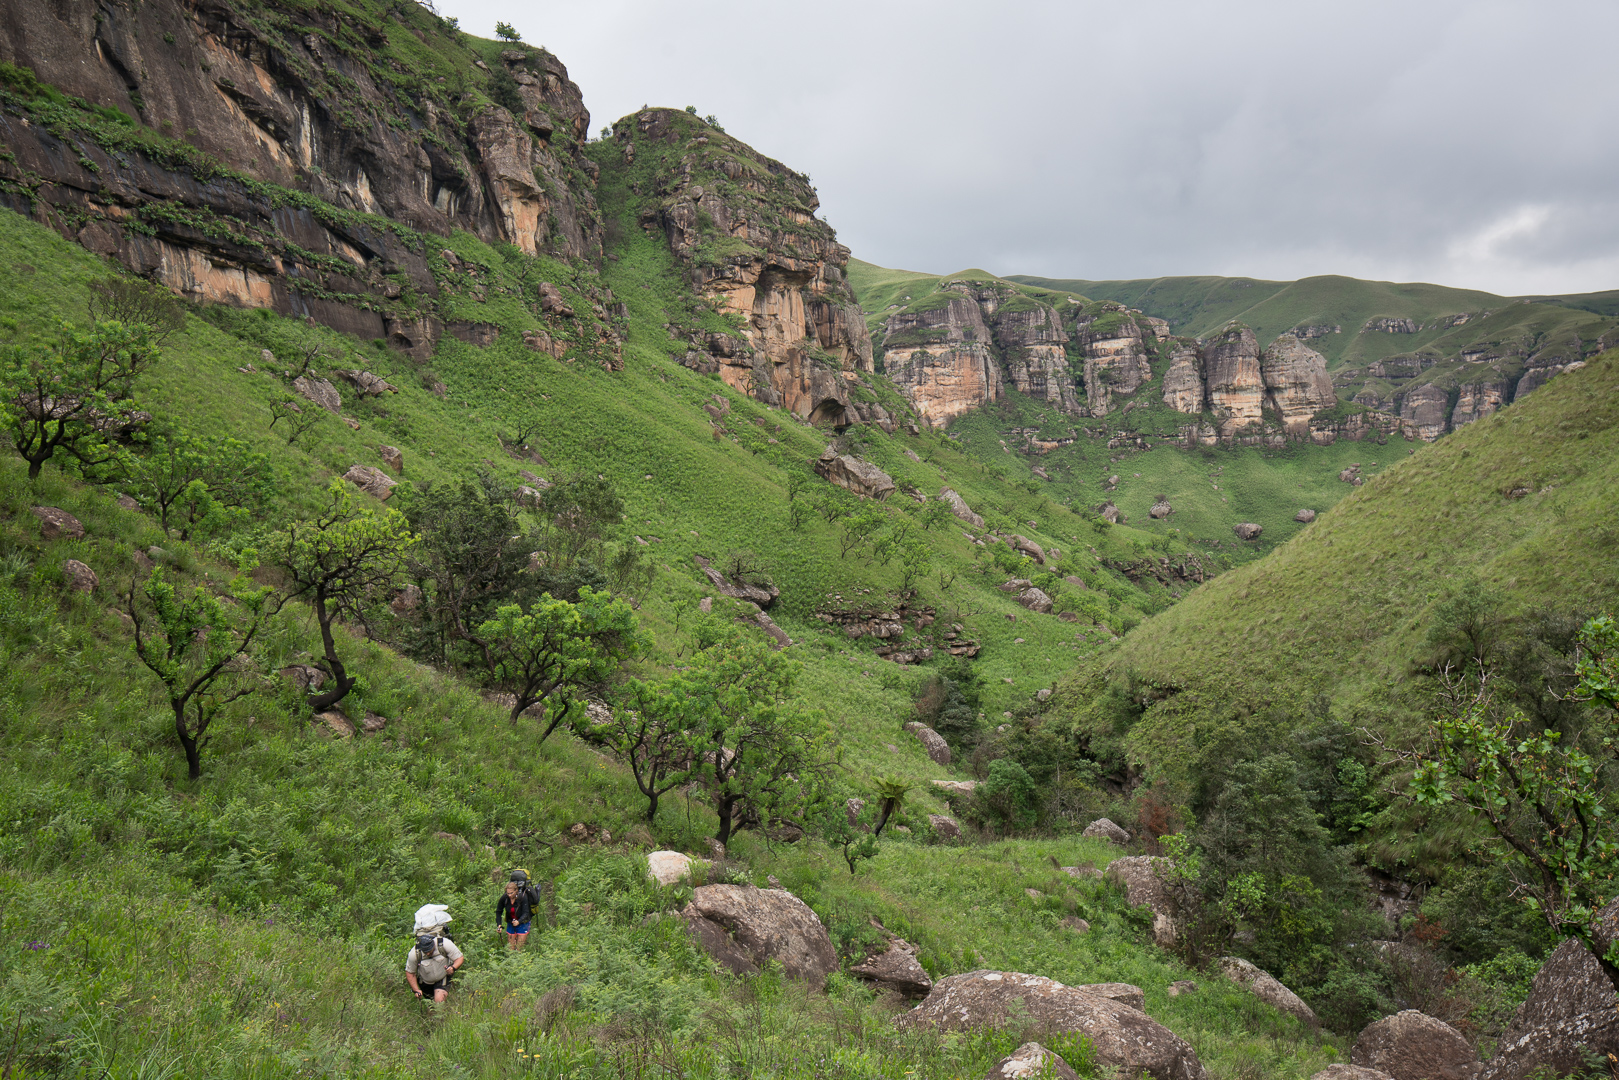 Making our way further up the valley. This is just before the turning to Marble Baths.